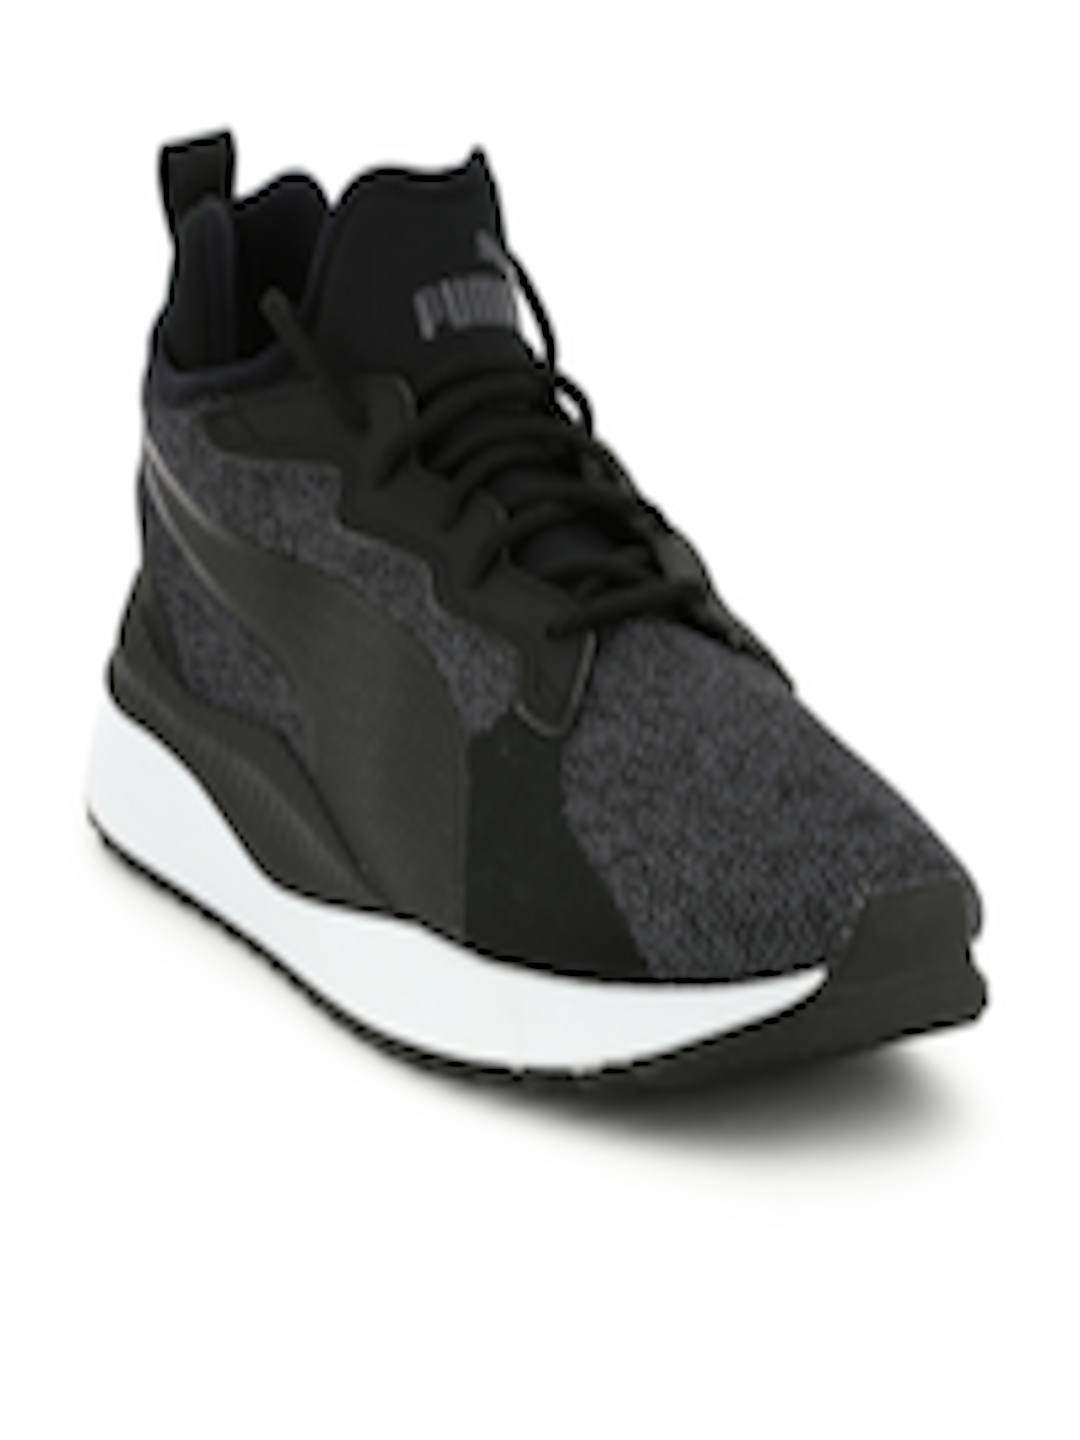 Buy Puma Men Charcoal Grey   Black Pacer Next Tw Knit Sneakers - Casual  Shoes for Men 2016449  5fe2b7a9a